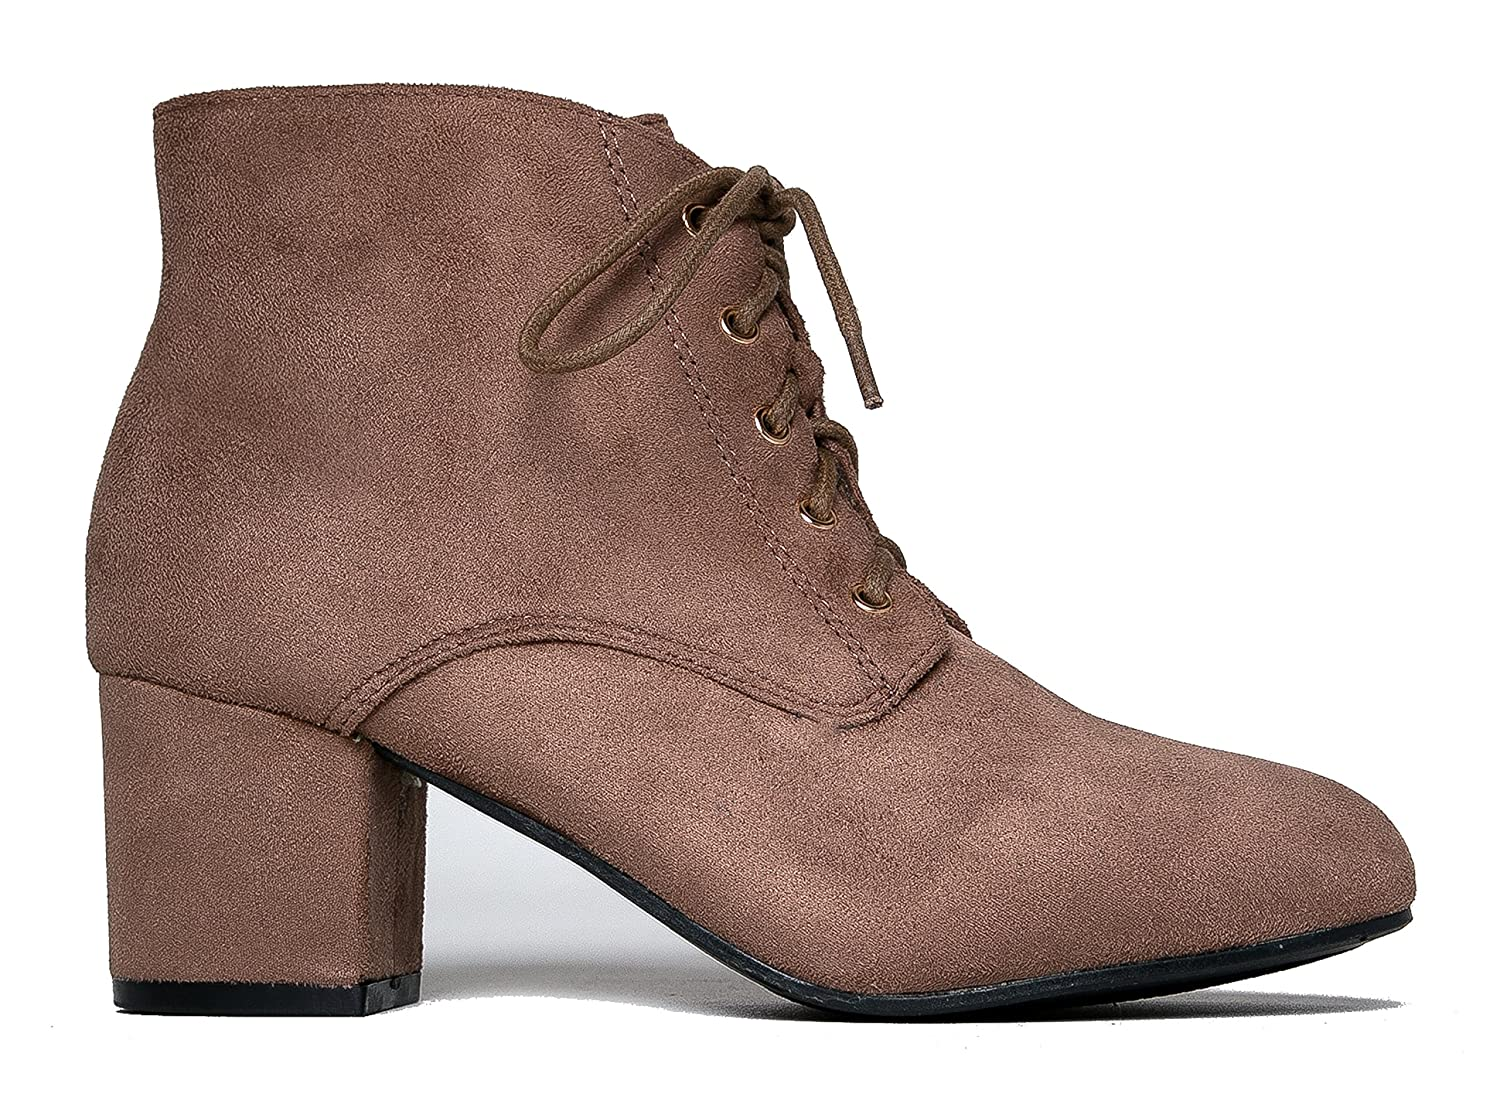 247b28bc480e6 J. Adams Aubrey Ankle Boot - Casual Suede Low Chunky Block Heel Lace Up  Bootie